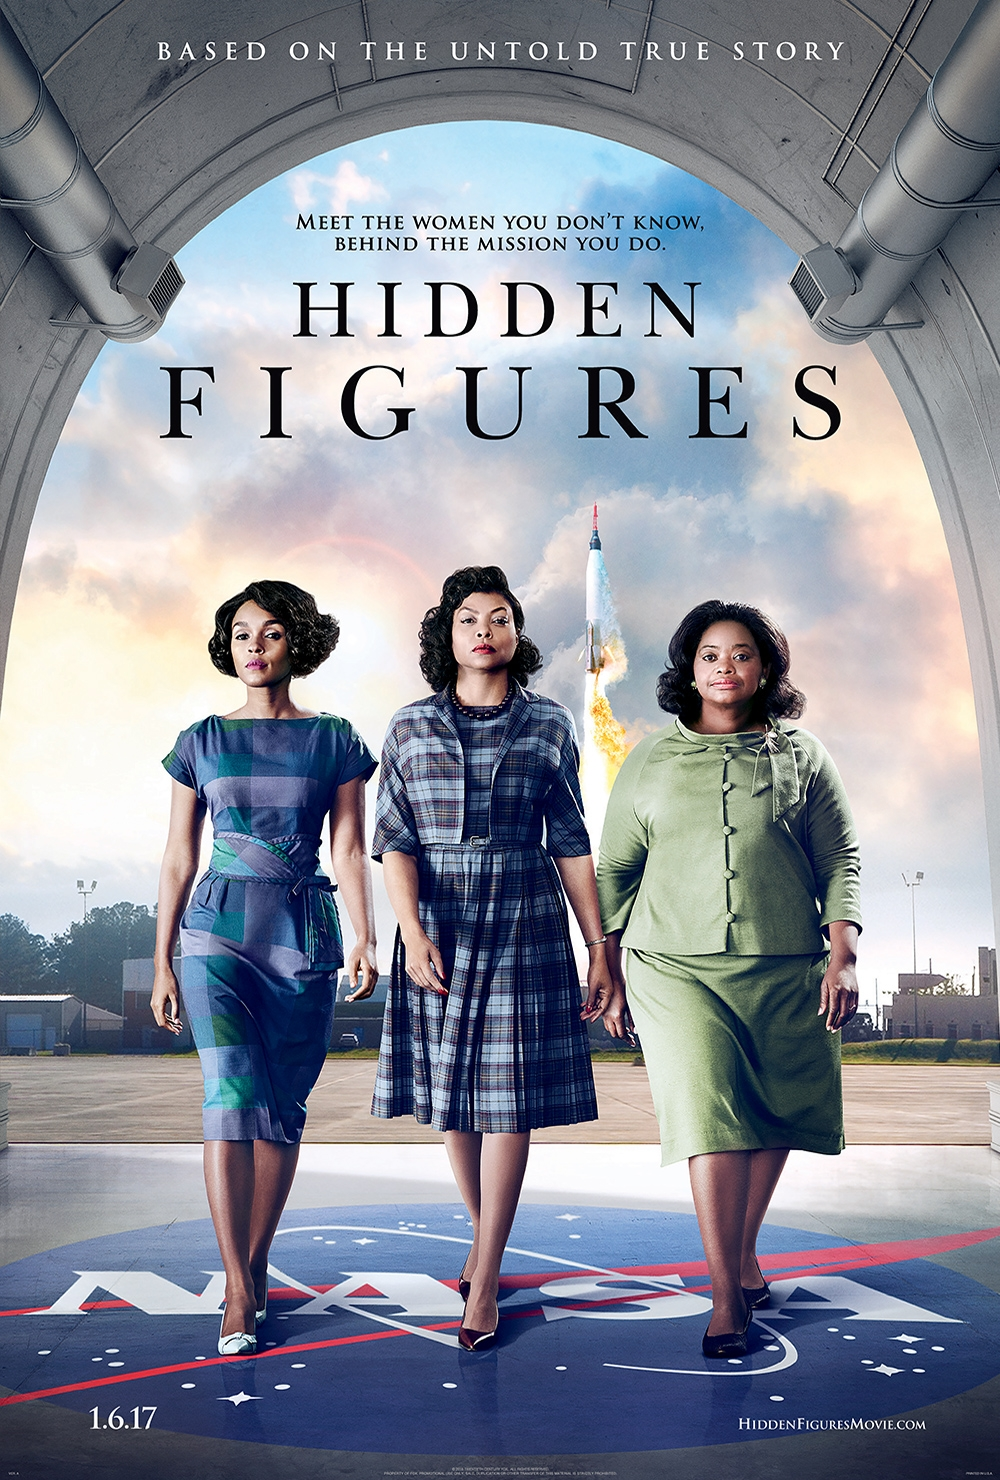 """Hidden Figures           Normal   0           false   false   false     EN-US   X-NONE   X-NONE                                                                                                                                                                                                                                                                                                                                                                                                                                                                                                                                                                                                                                                                                                                                                                                                                                                                                     /* Style Definitions */ table.MsoNormalTable {mso-style-name:""""Table Normal""""; mso-tstyle-rowband-size:0; mso-tstyle-colband-size:0; mso-style-noshow:yes; mso-style-priority:99; mso-style-parent:""""""""; mso-padding-alt:0cm 5.4pt 0cm 5.4pt; mso-para-margin-top:0cm; mso-para-margin-right:0cm; mso-para-margin-bottom:8.0pt; mso-para-margin-left:0cm; line-height:107%; mso-pagination:widow-orphan; font-size:11.0pt; font-family:""""Calibri"""",sans-serif; color:black;}      Hidden Figures  is based on a true story about African American female mathematicians who worked at NASA during the Space Race. These three women played vital roles in helping the United States become...  Read More"""